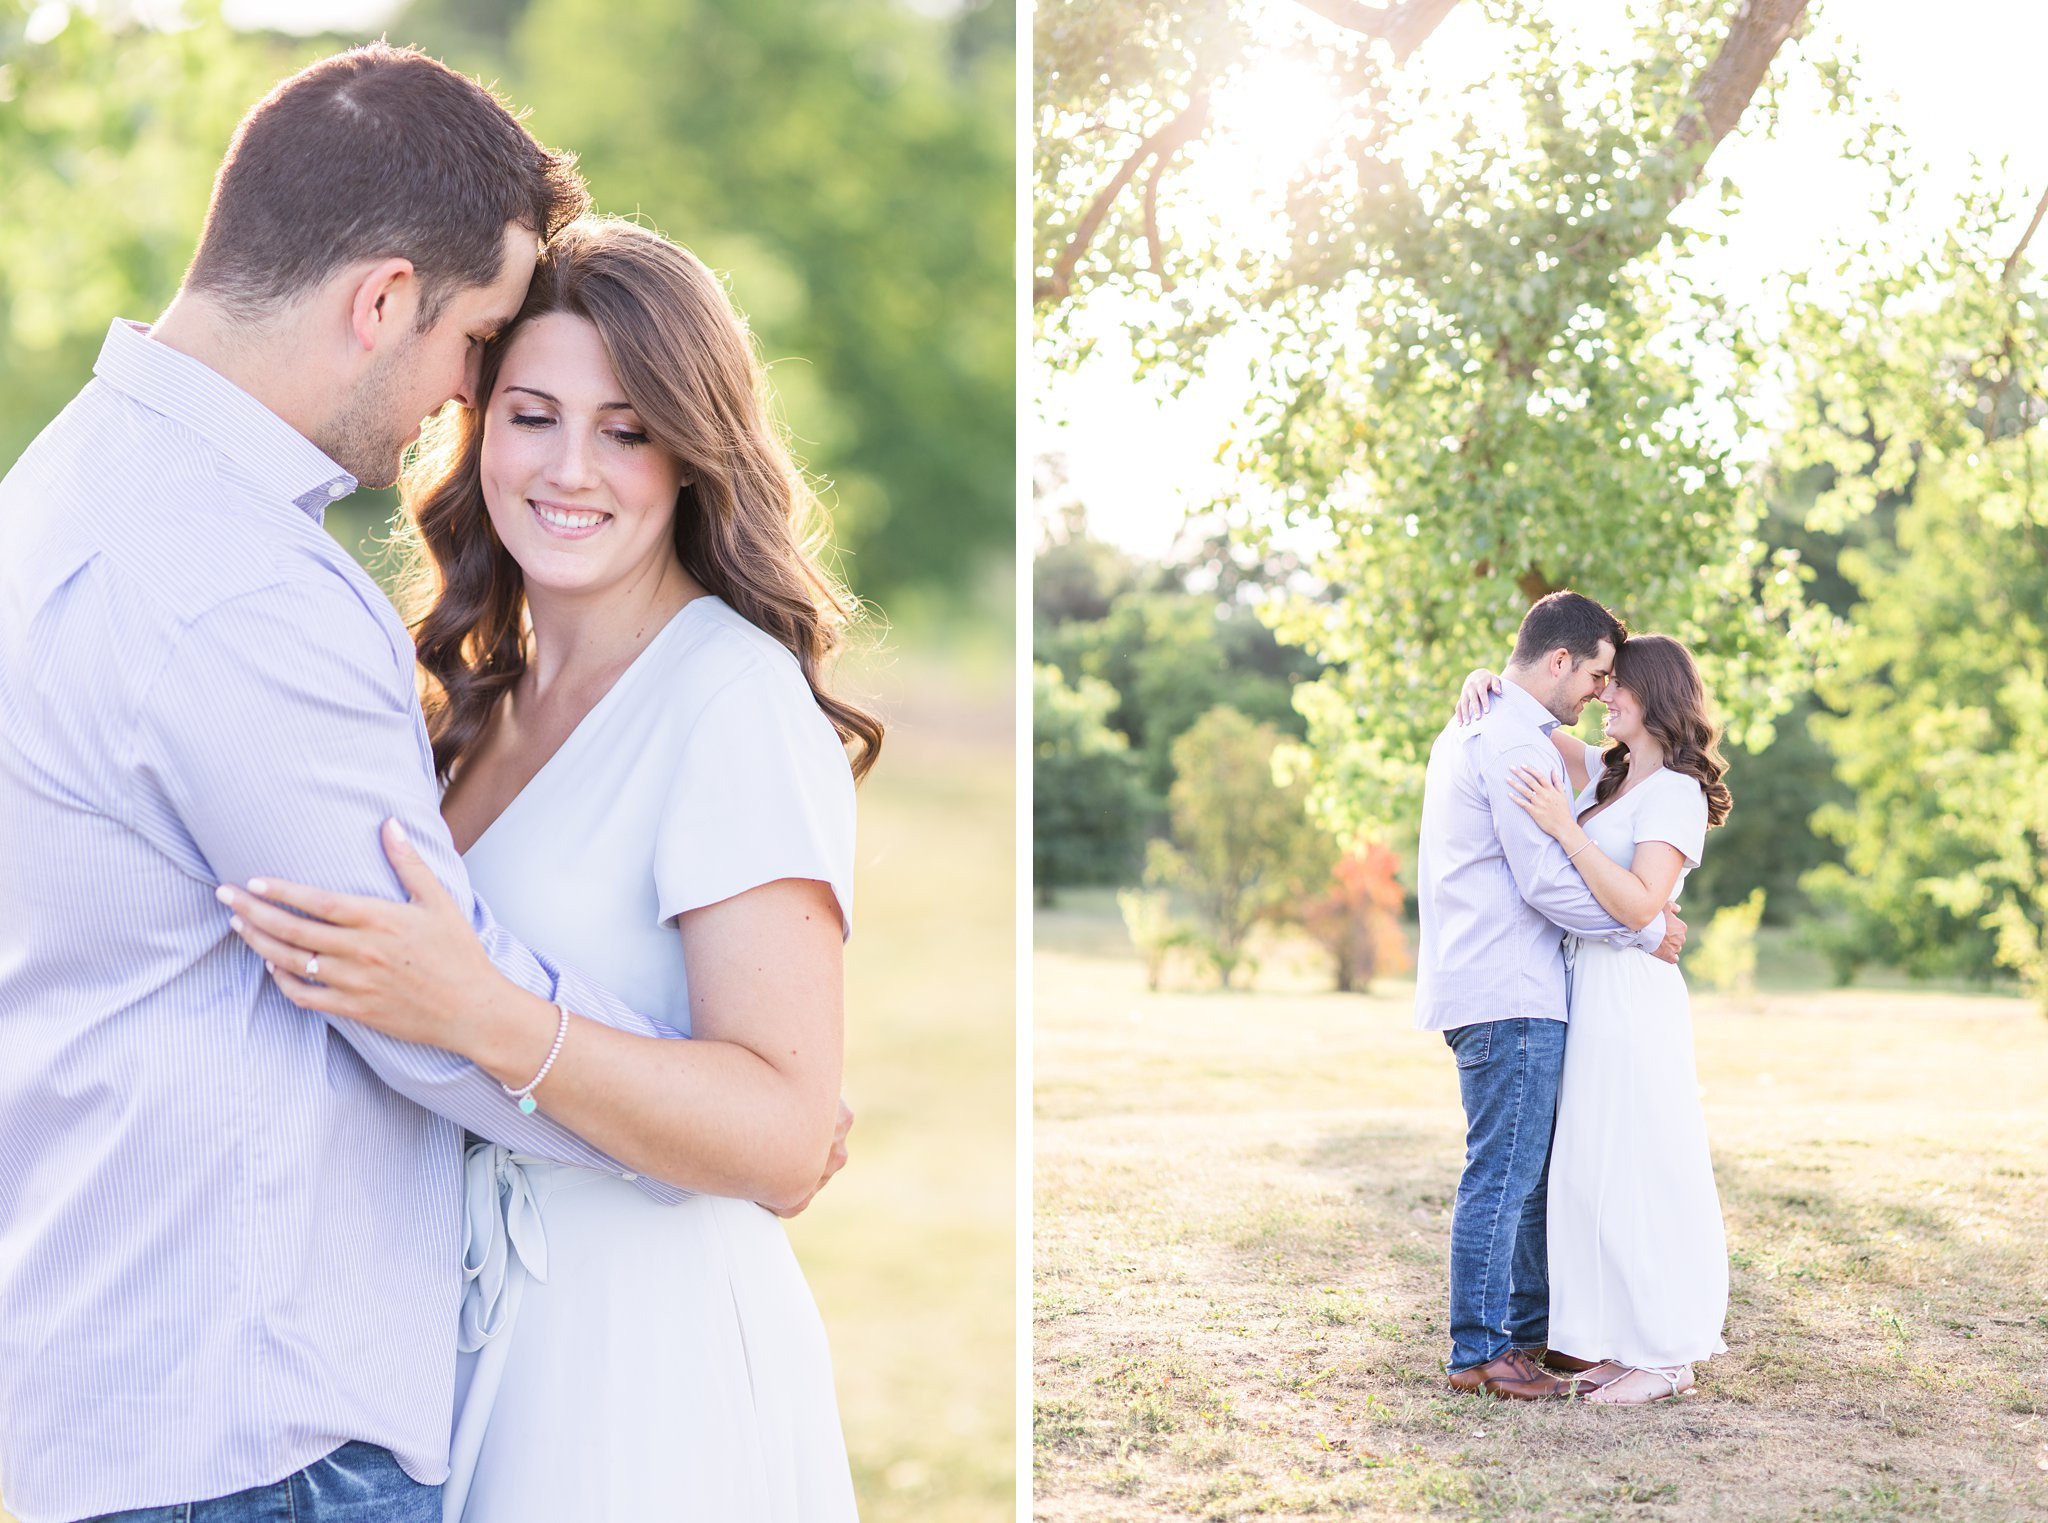 Trees, grassy, engagement session, Fletcher's Wildlife Garden Engagement photos